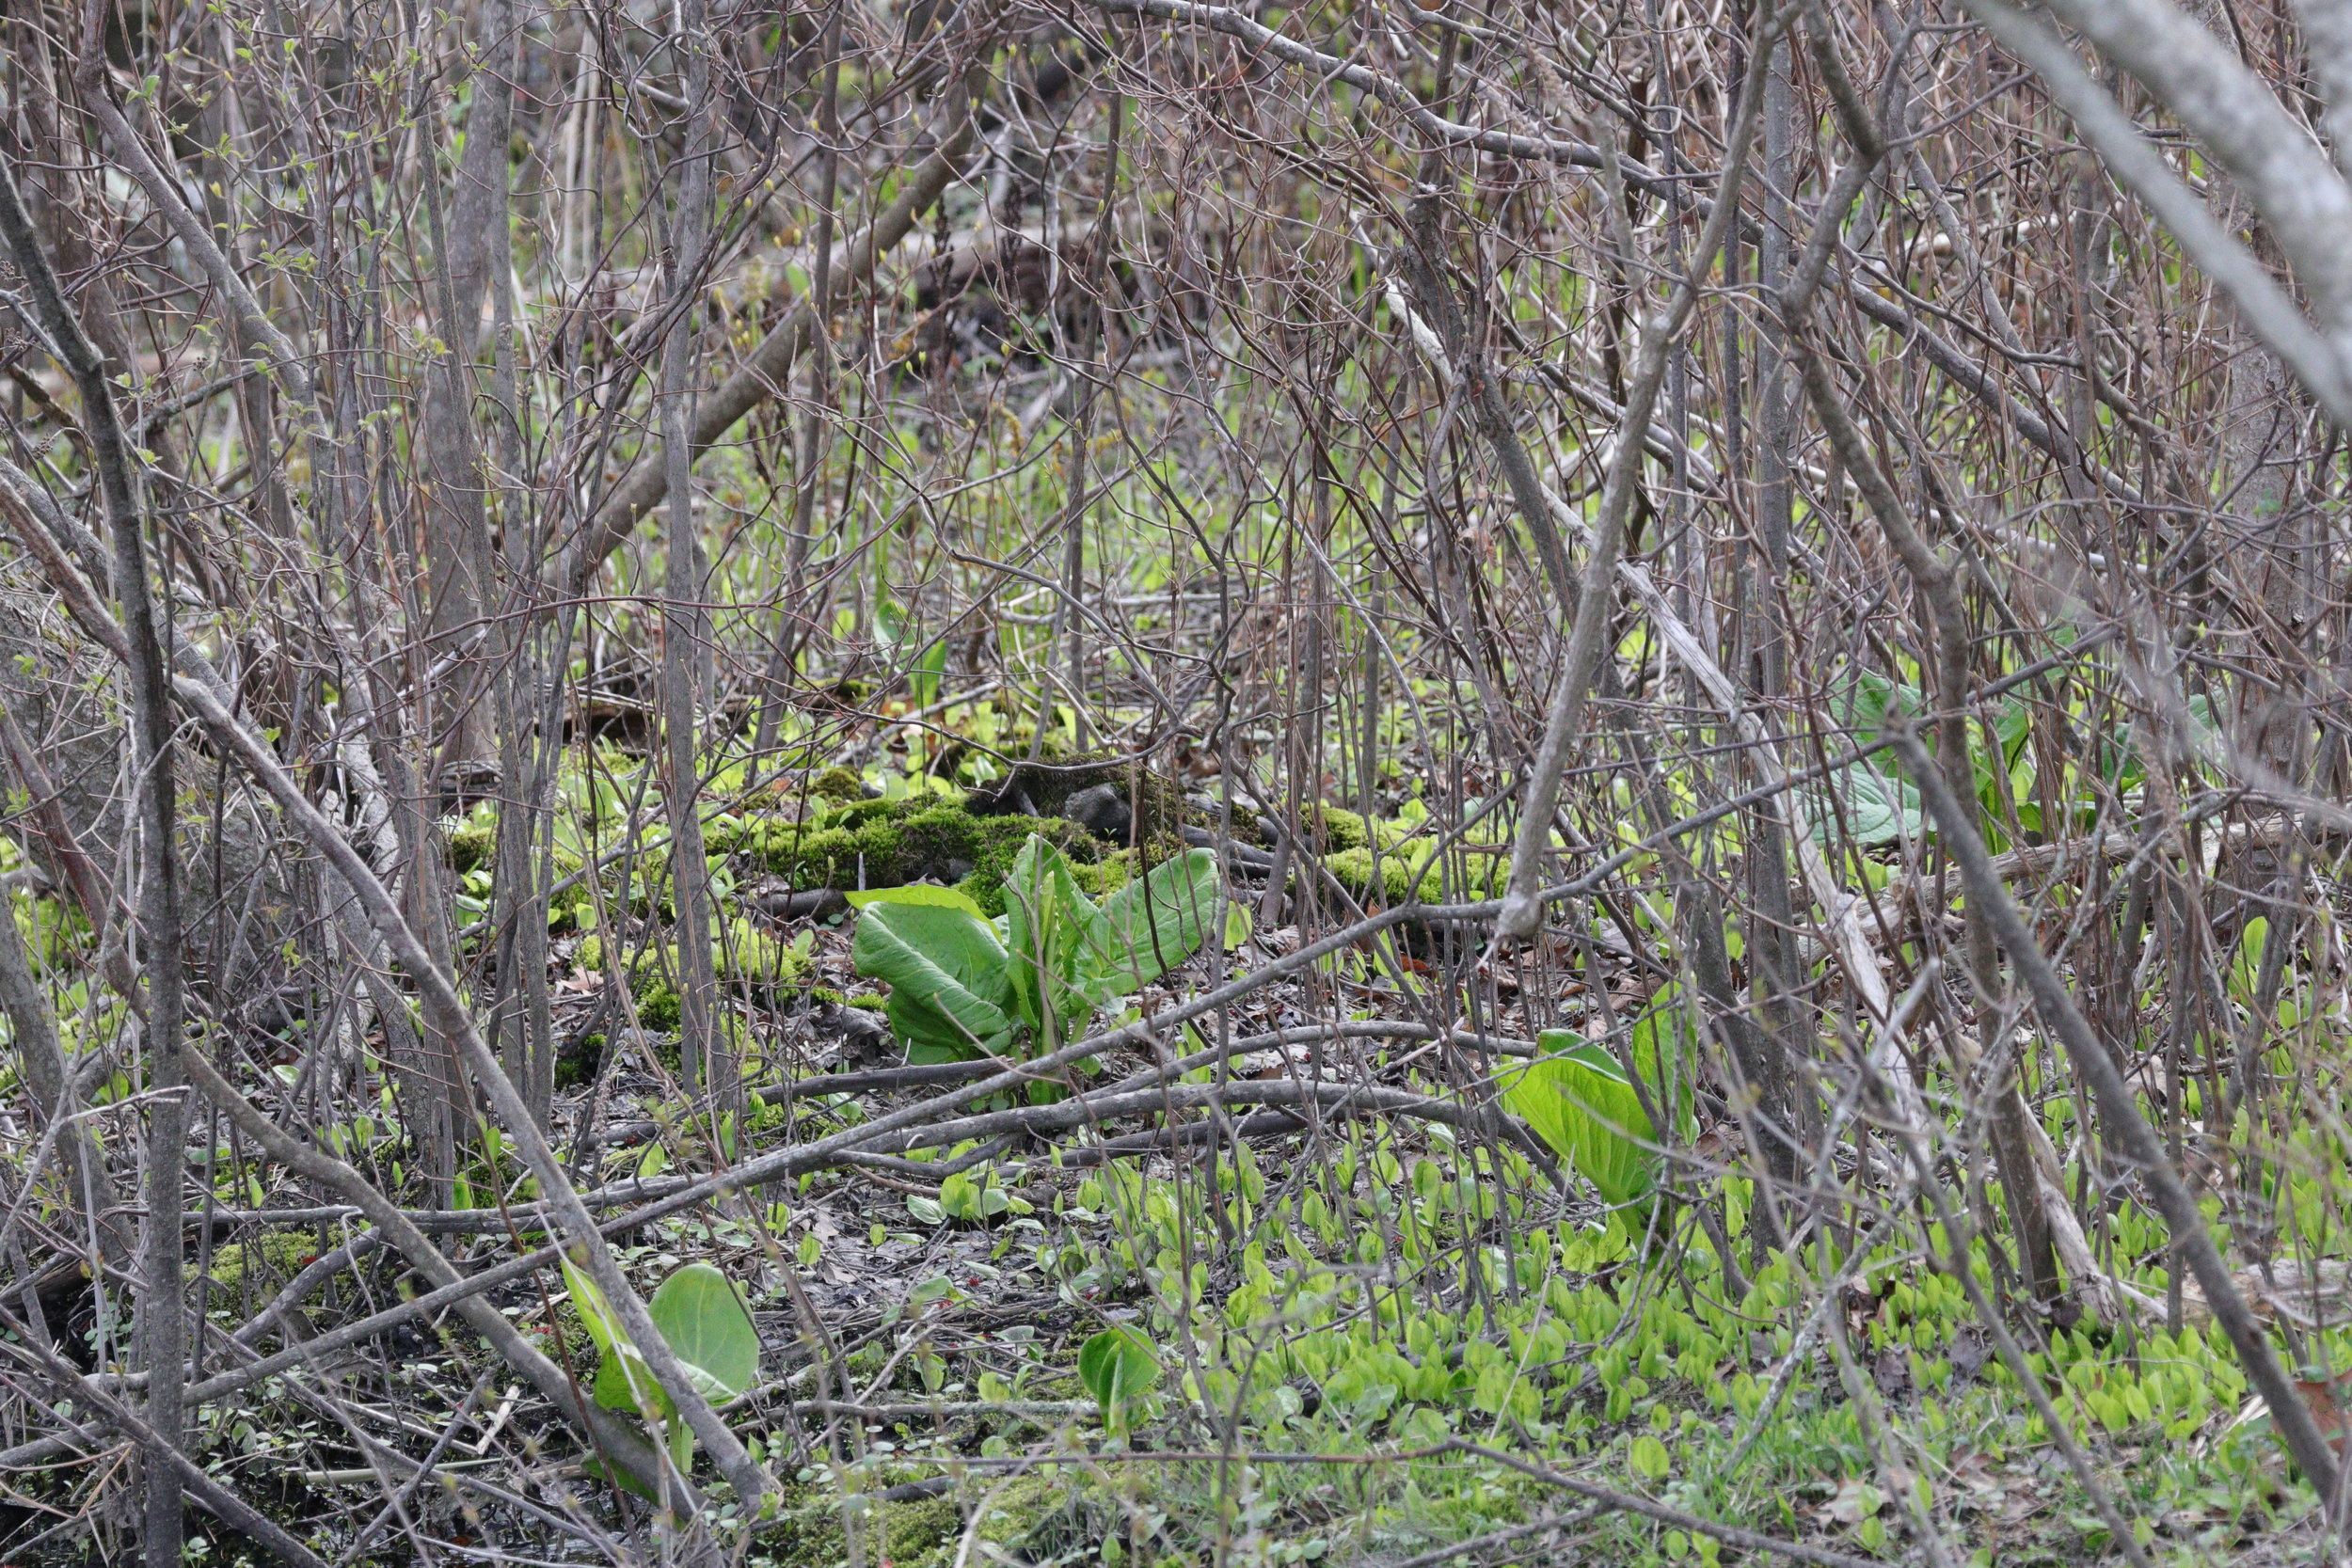 May 3, 2018 | Skunk Cabbage Emerging from the Woods | Photo By: Cyndi Jackson